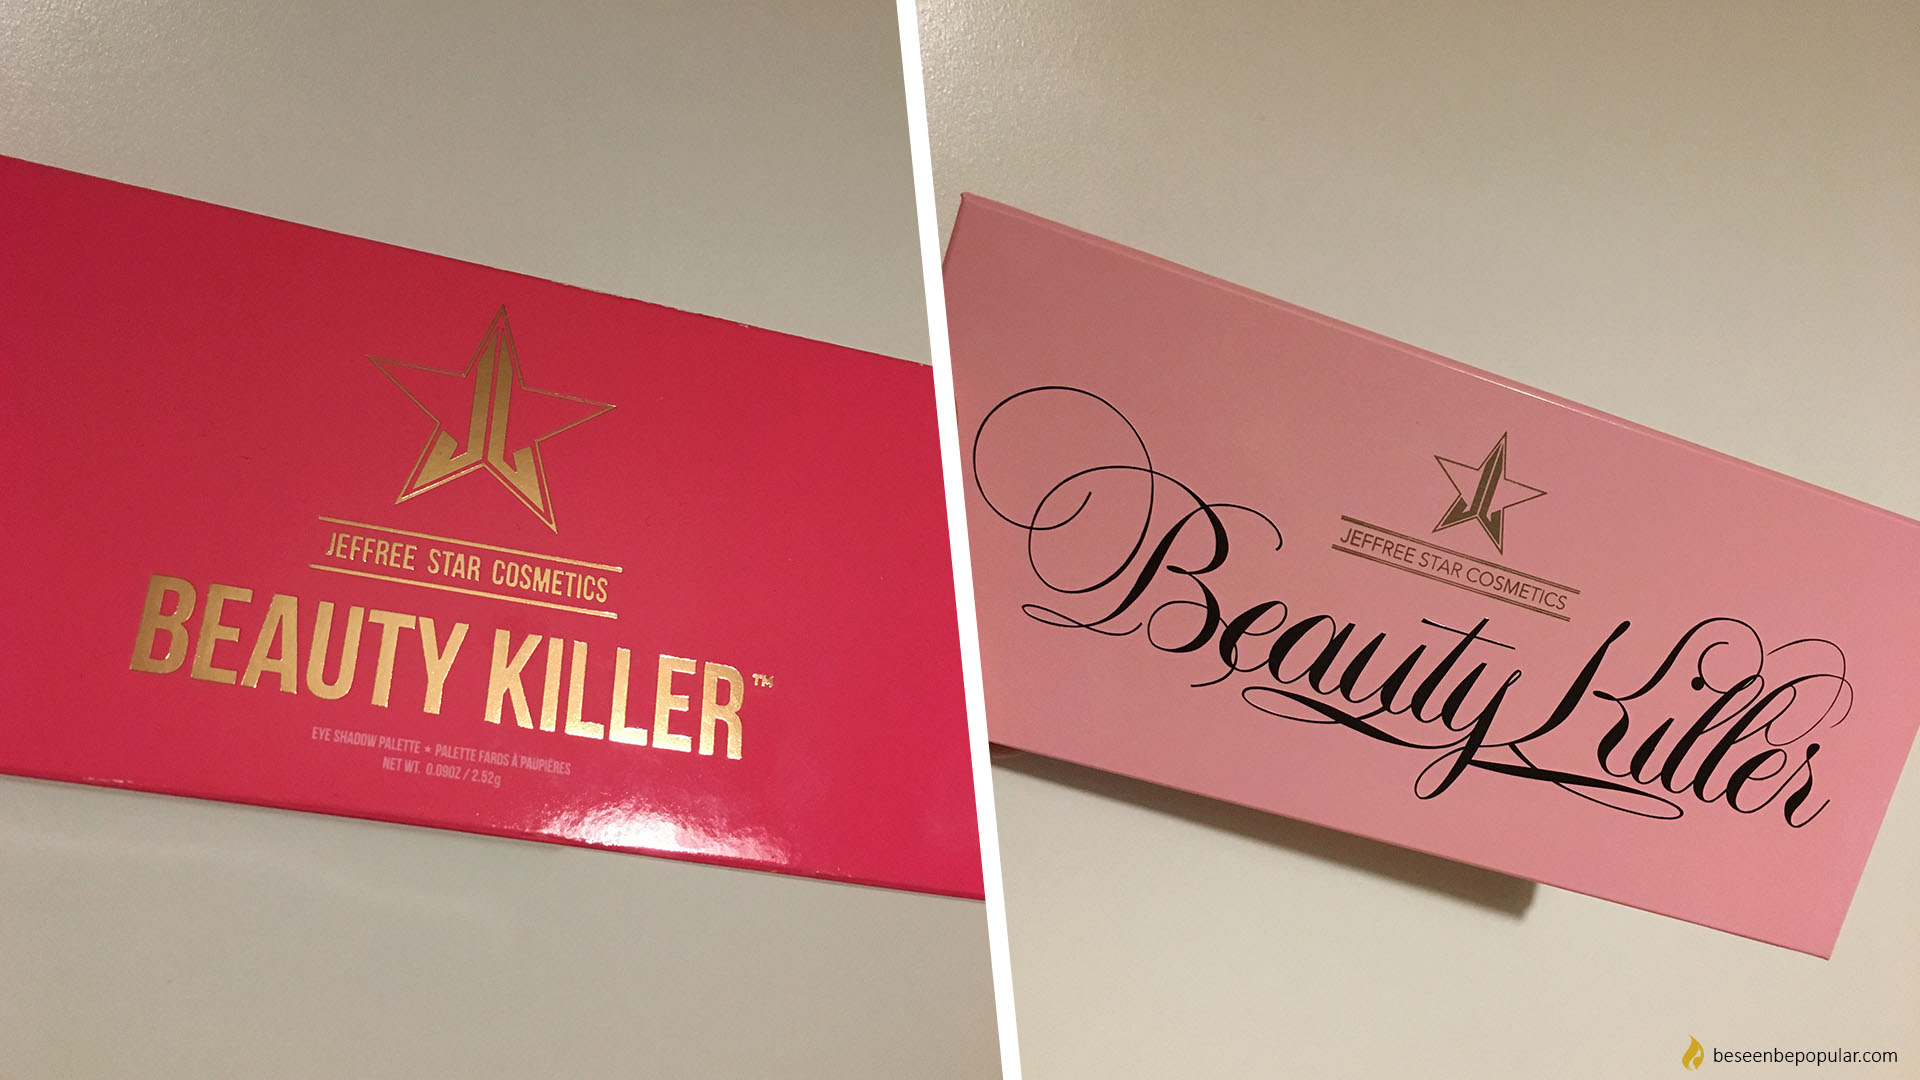 Jeffree Star Cosmetics Beauty Killer paleta